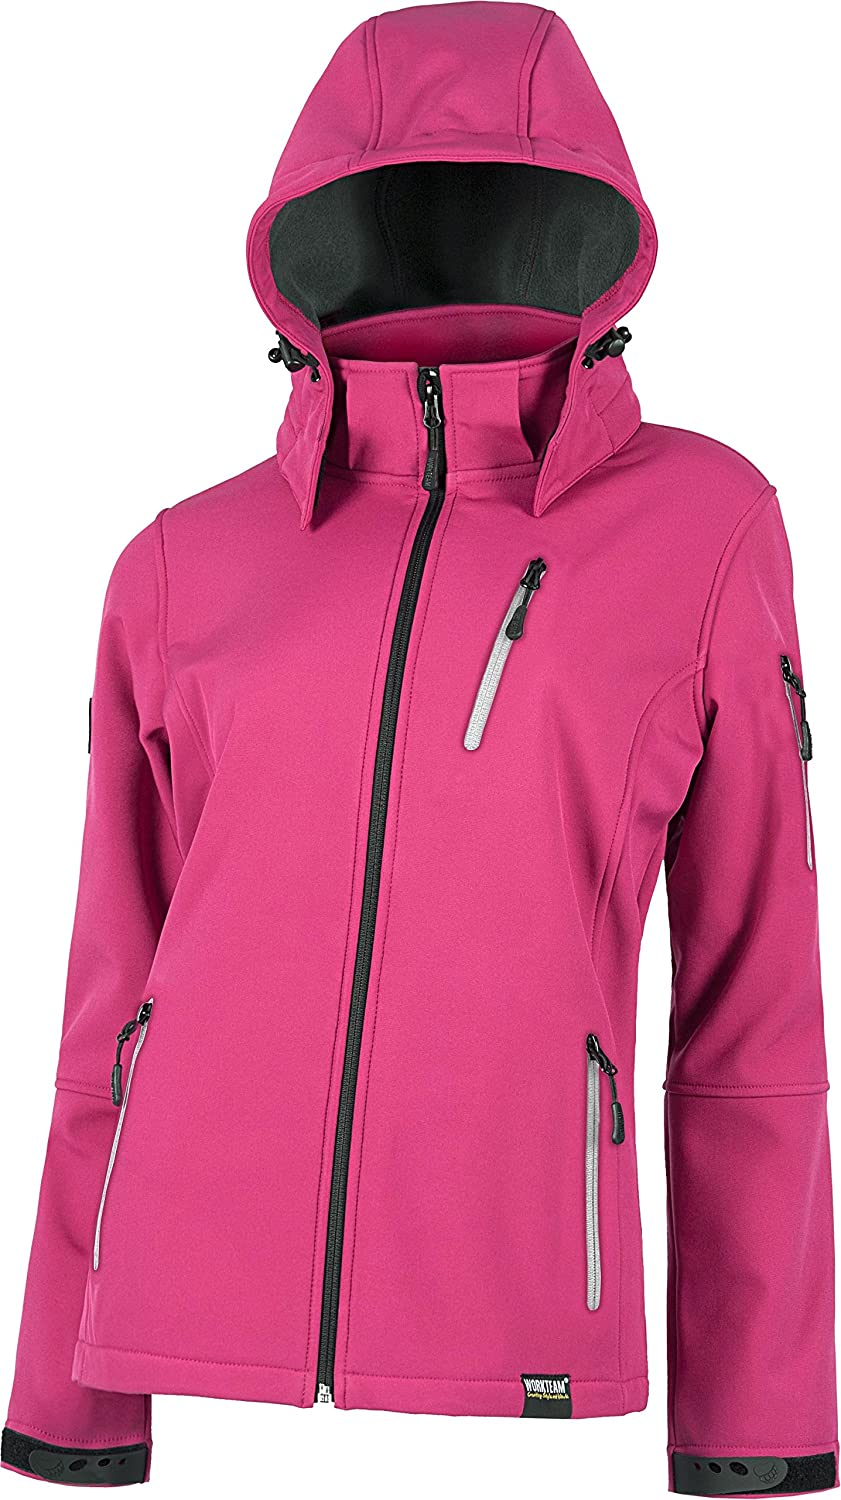 WORKTEAM - CHAQUETA WORKSHELL S9497 (T-L, FUCSIA): Amazon.es ...